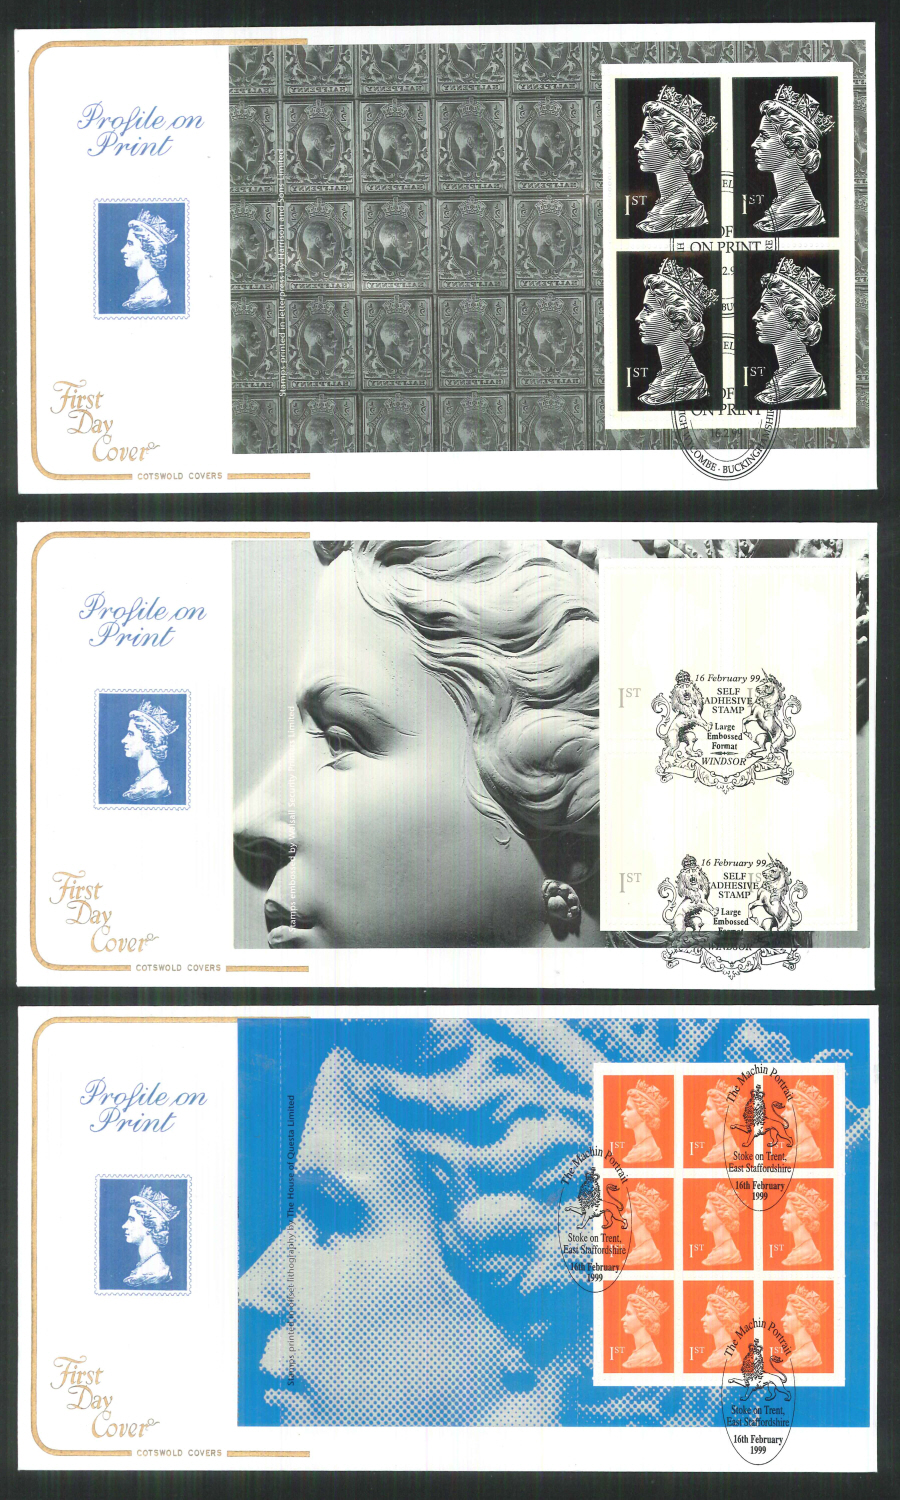 1999 - Cotswold Profile on Print - Prestige Stamp Book Set of 5 Covers - Various Postmarks